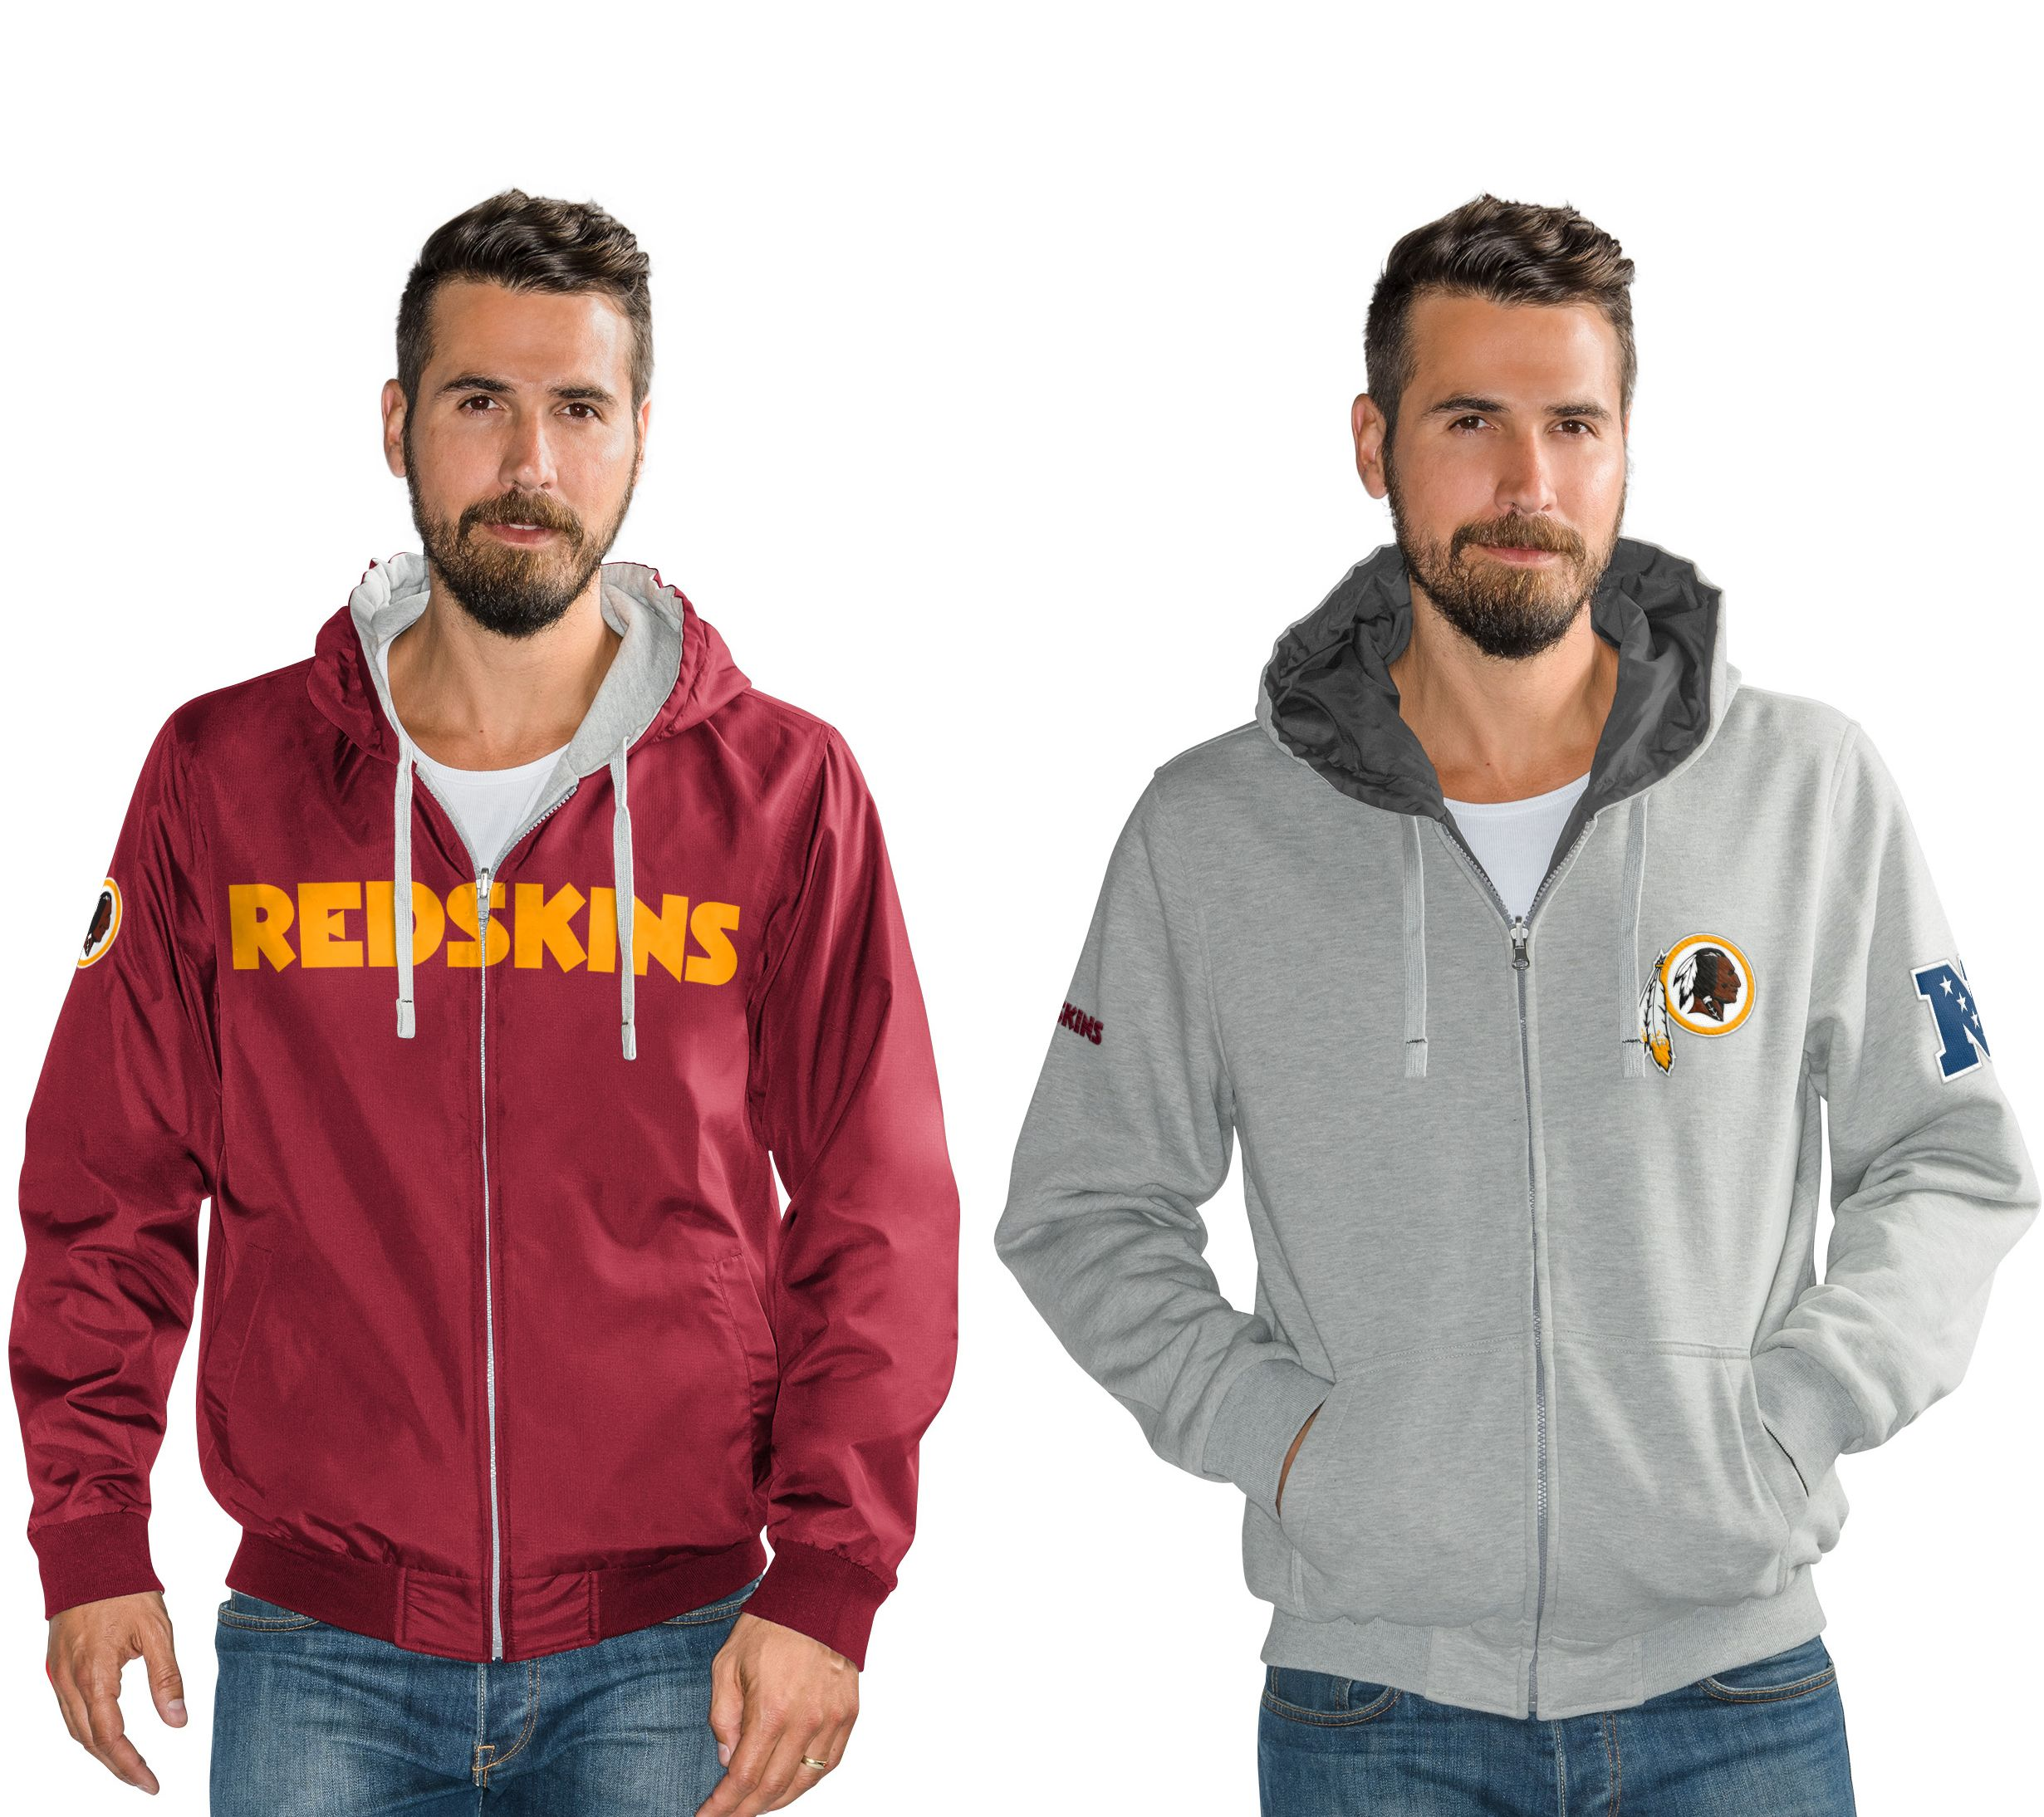 100% authentic 28e50 e07cc NFL Reversible Hoodie and Jacket in Team Colors — QVC.com